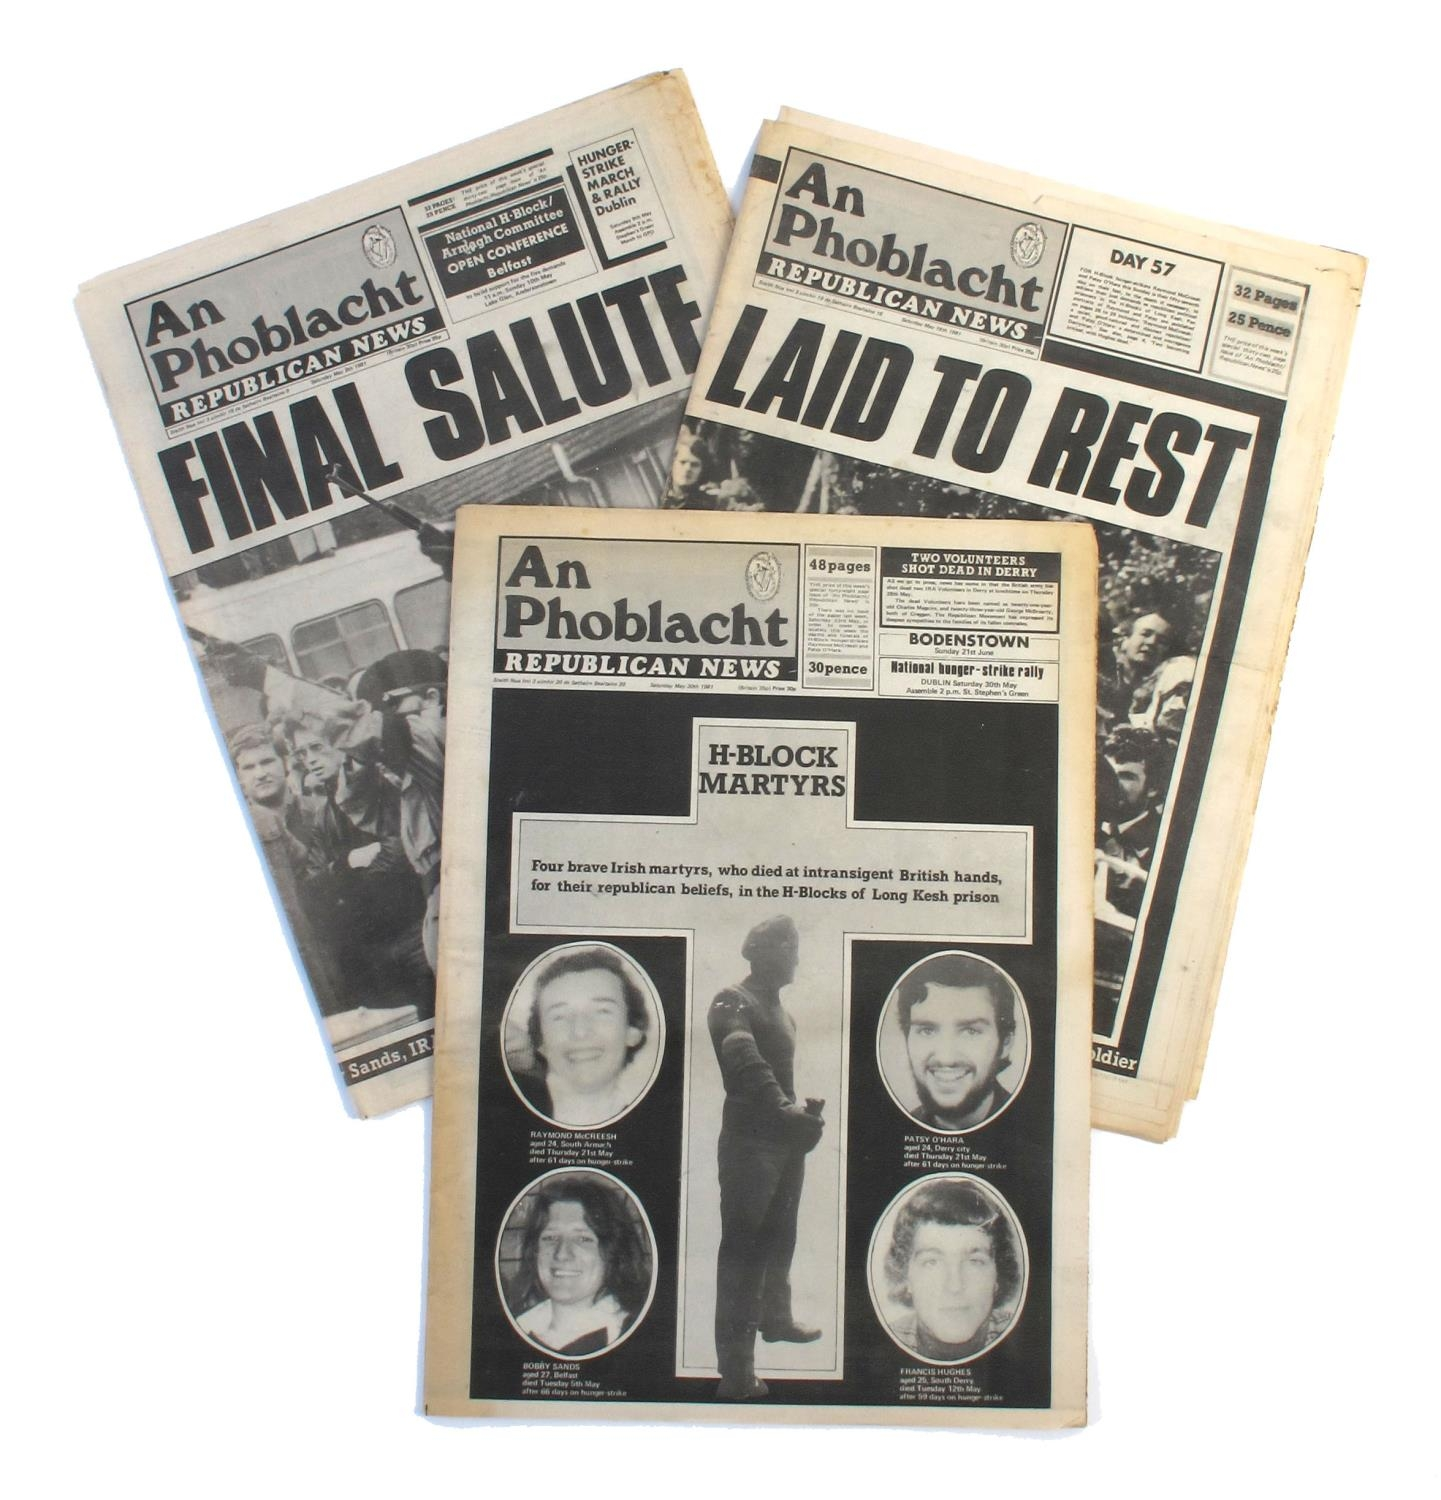 An Phoblacht / Republican News. 1981, three issues, 9th, 16th & 30th May. Reporting on the deaths